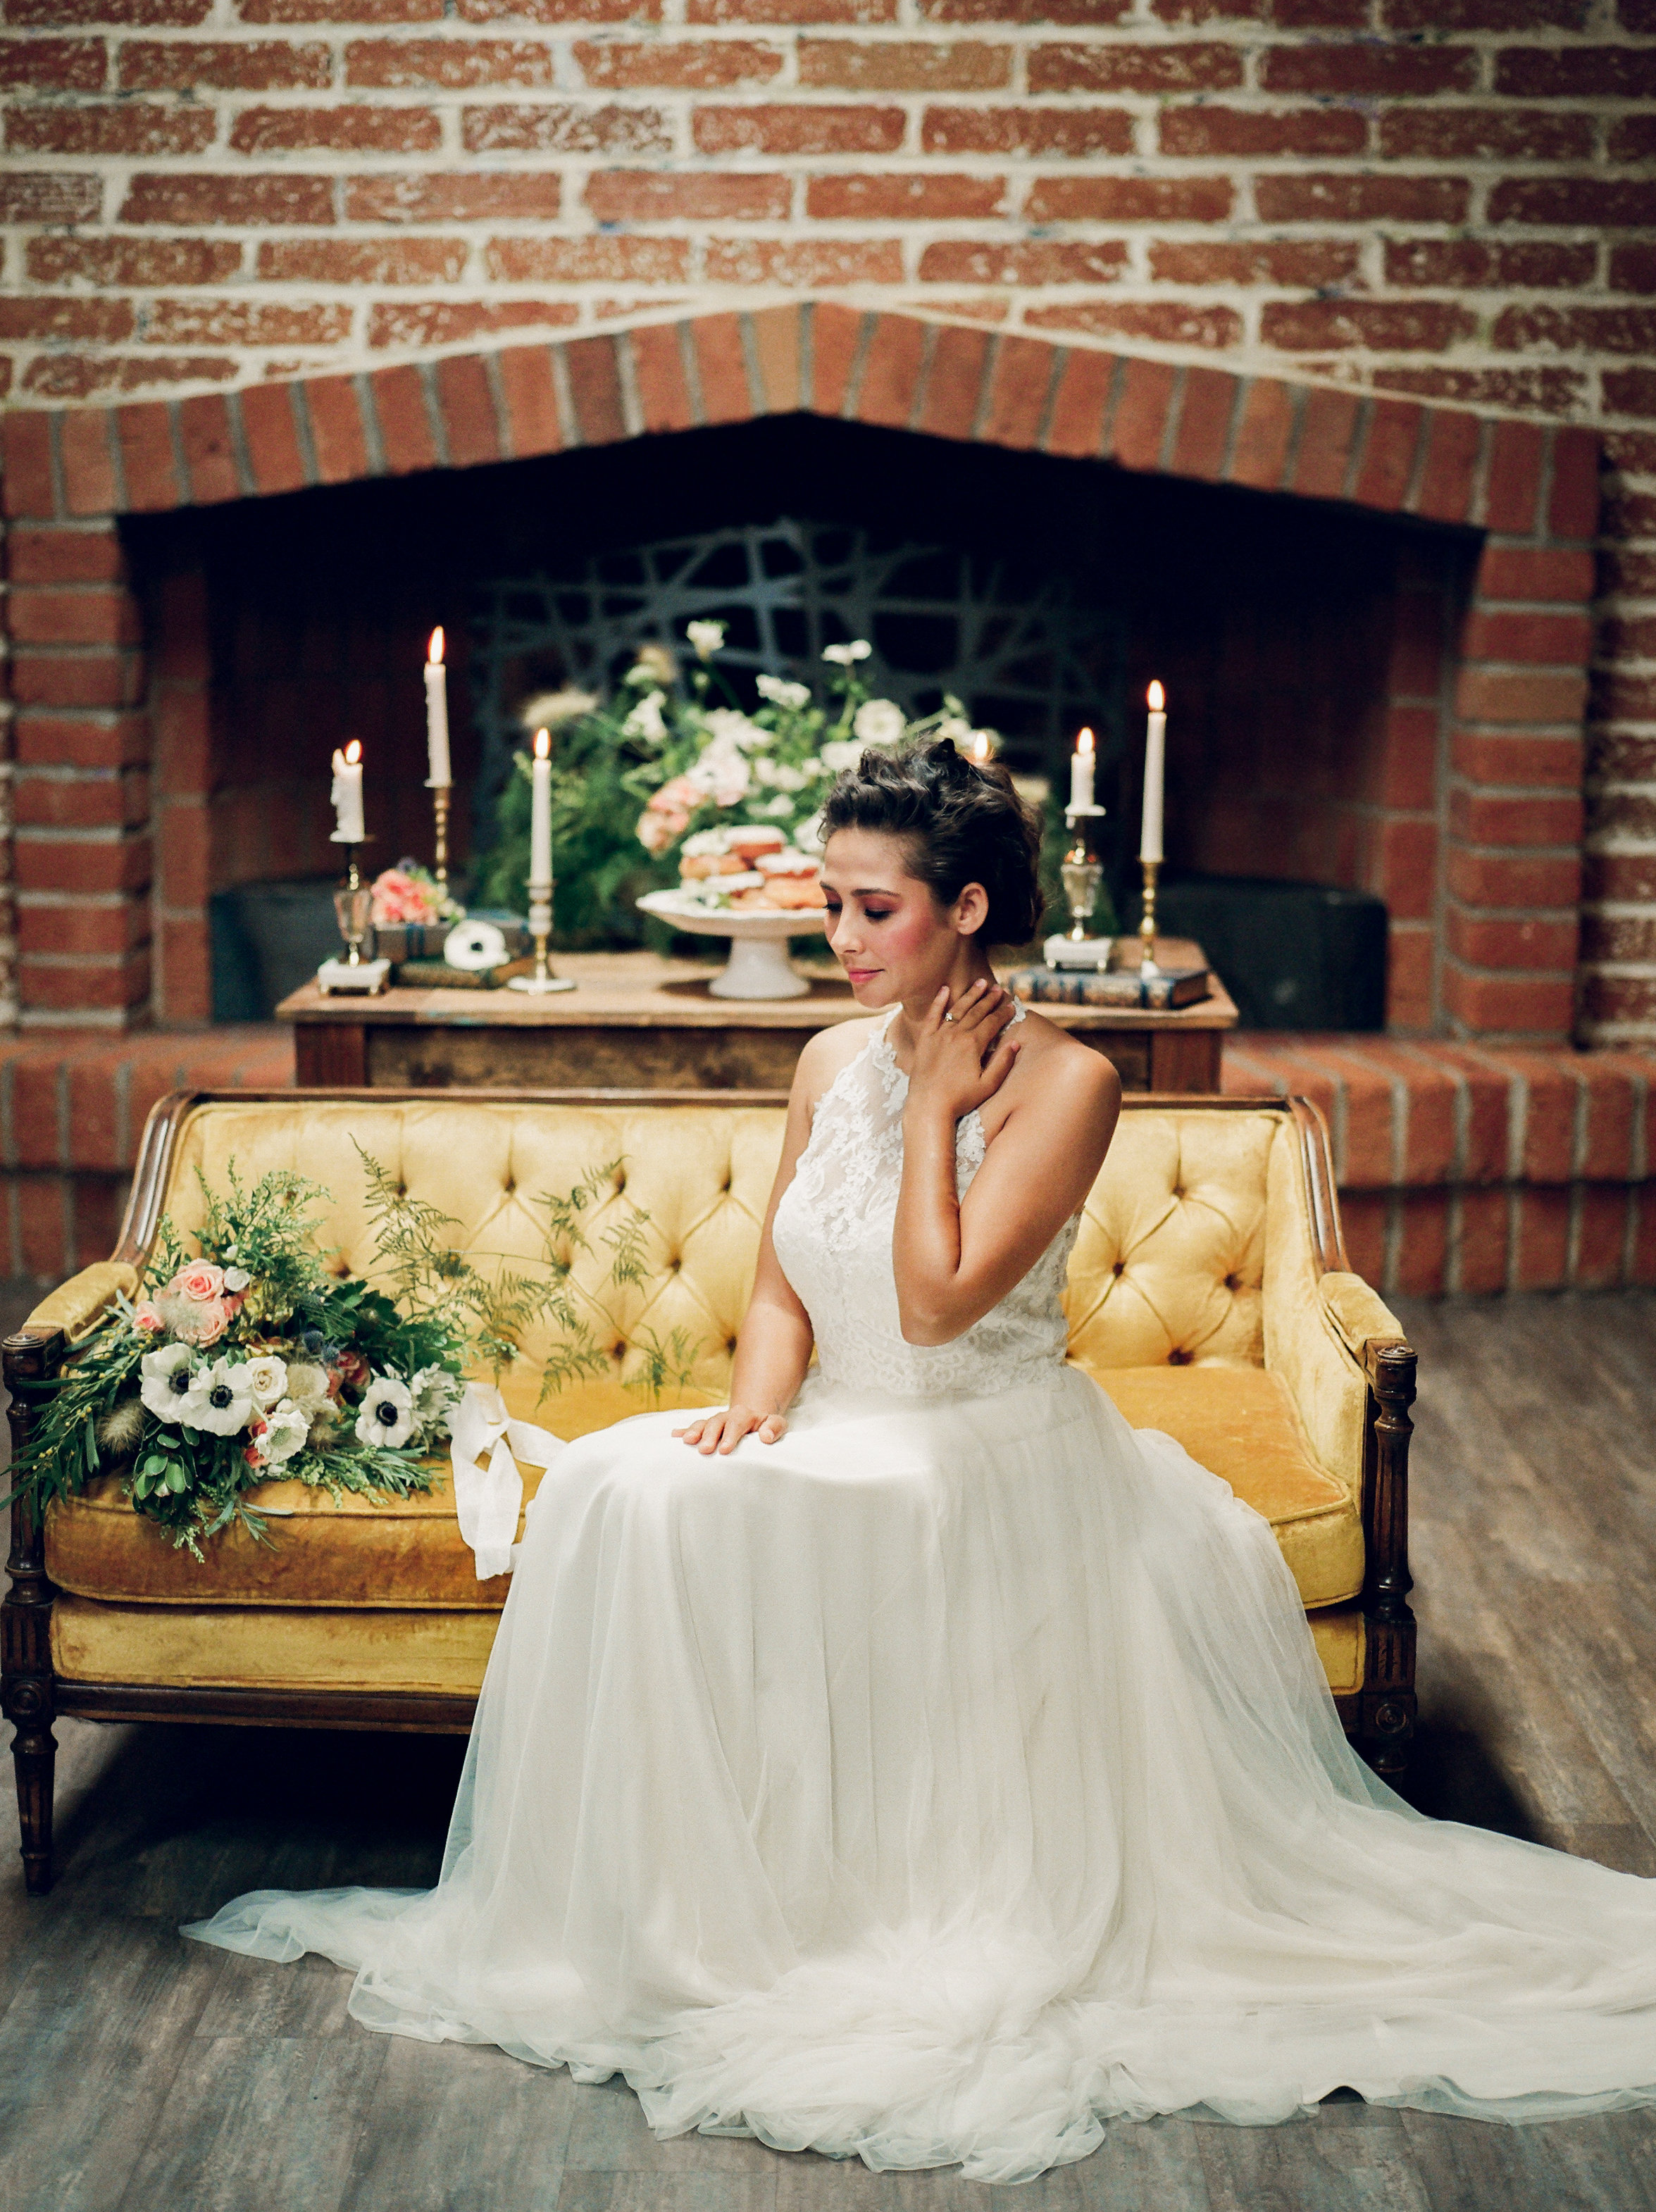 This bride sits in The Commons for photos before her wedding.